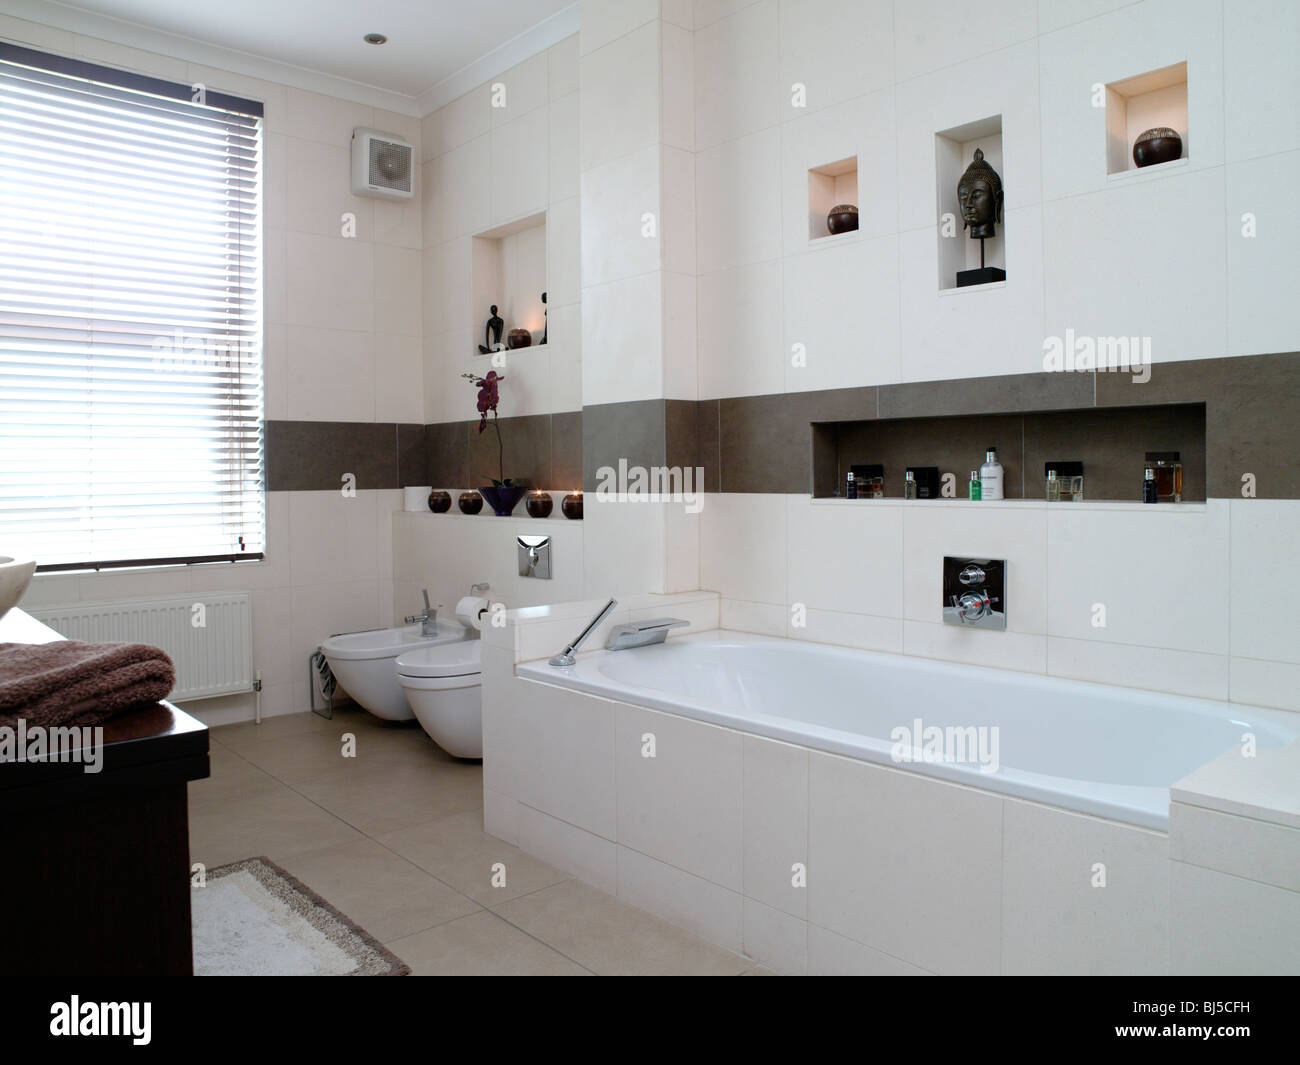 Modern bathrooms tiled in white and brown tiles,his and hers wash ...